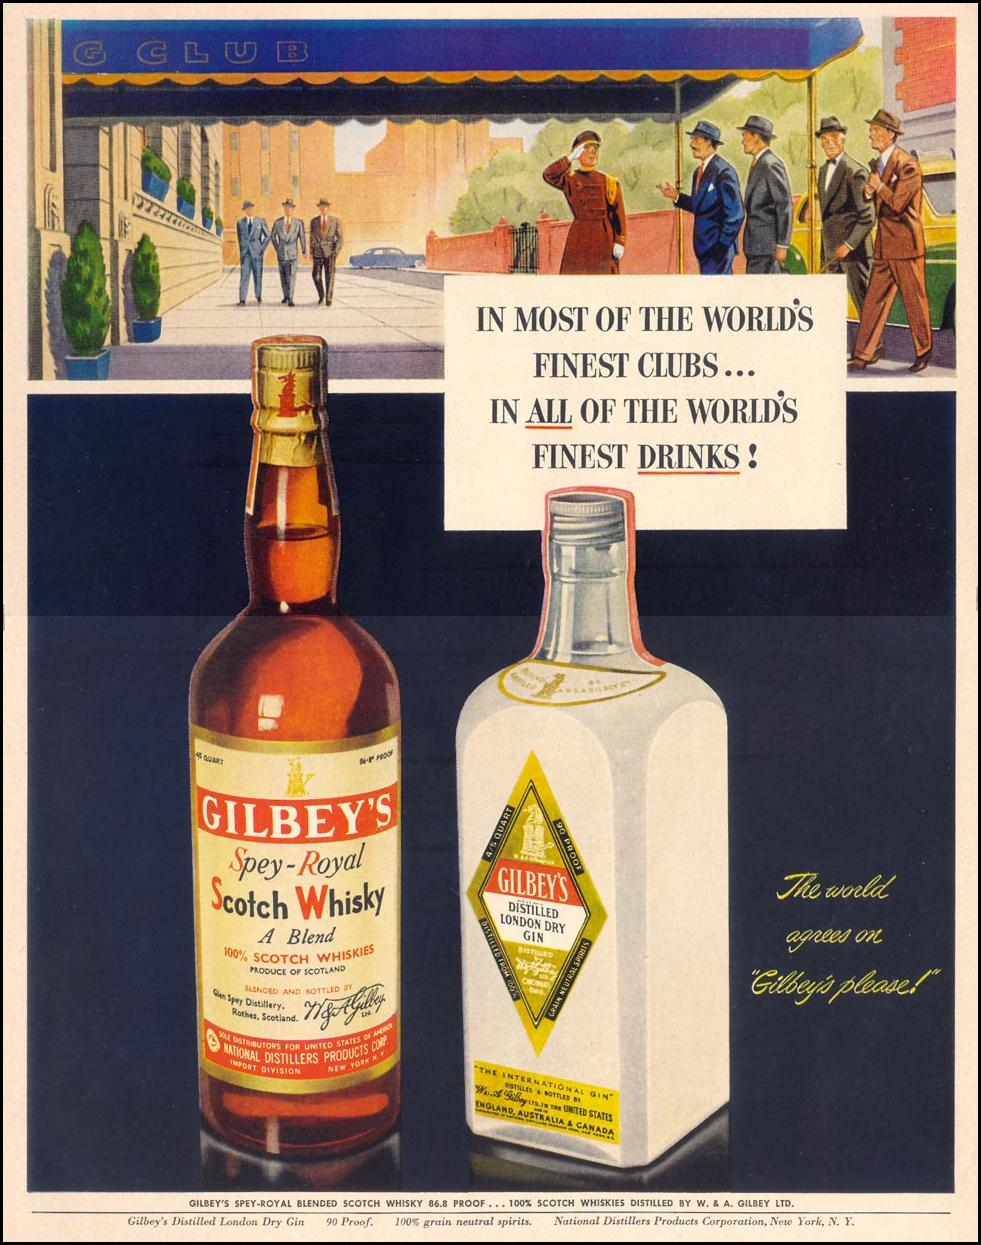 GILBEY'S SPEY-ROYAL SCOTCH & DISTILLED LONDON DRY GIN